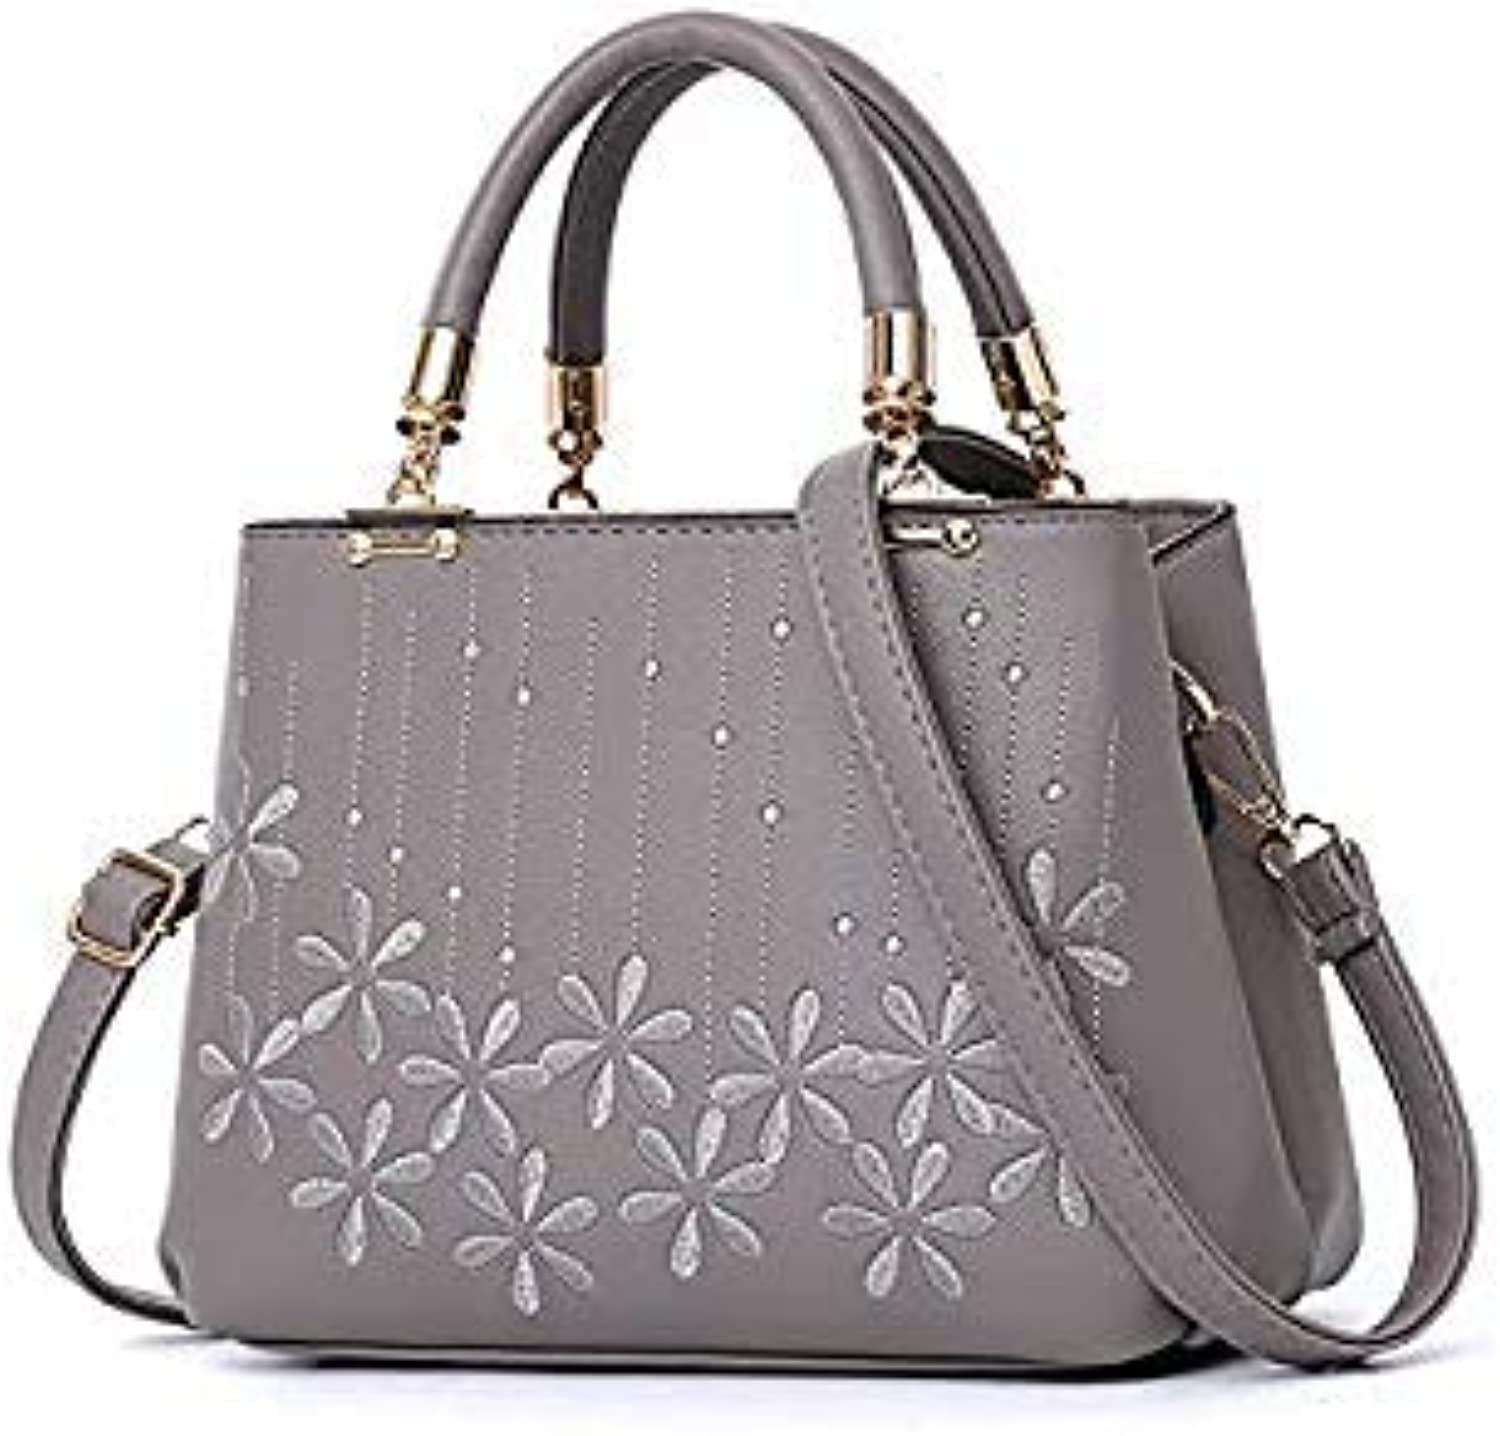 1ebccd69cc47 Women PU Leather Handbag Crossbody Bag Ladies Designer High Quality ...